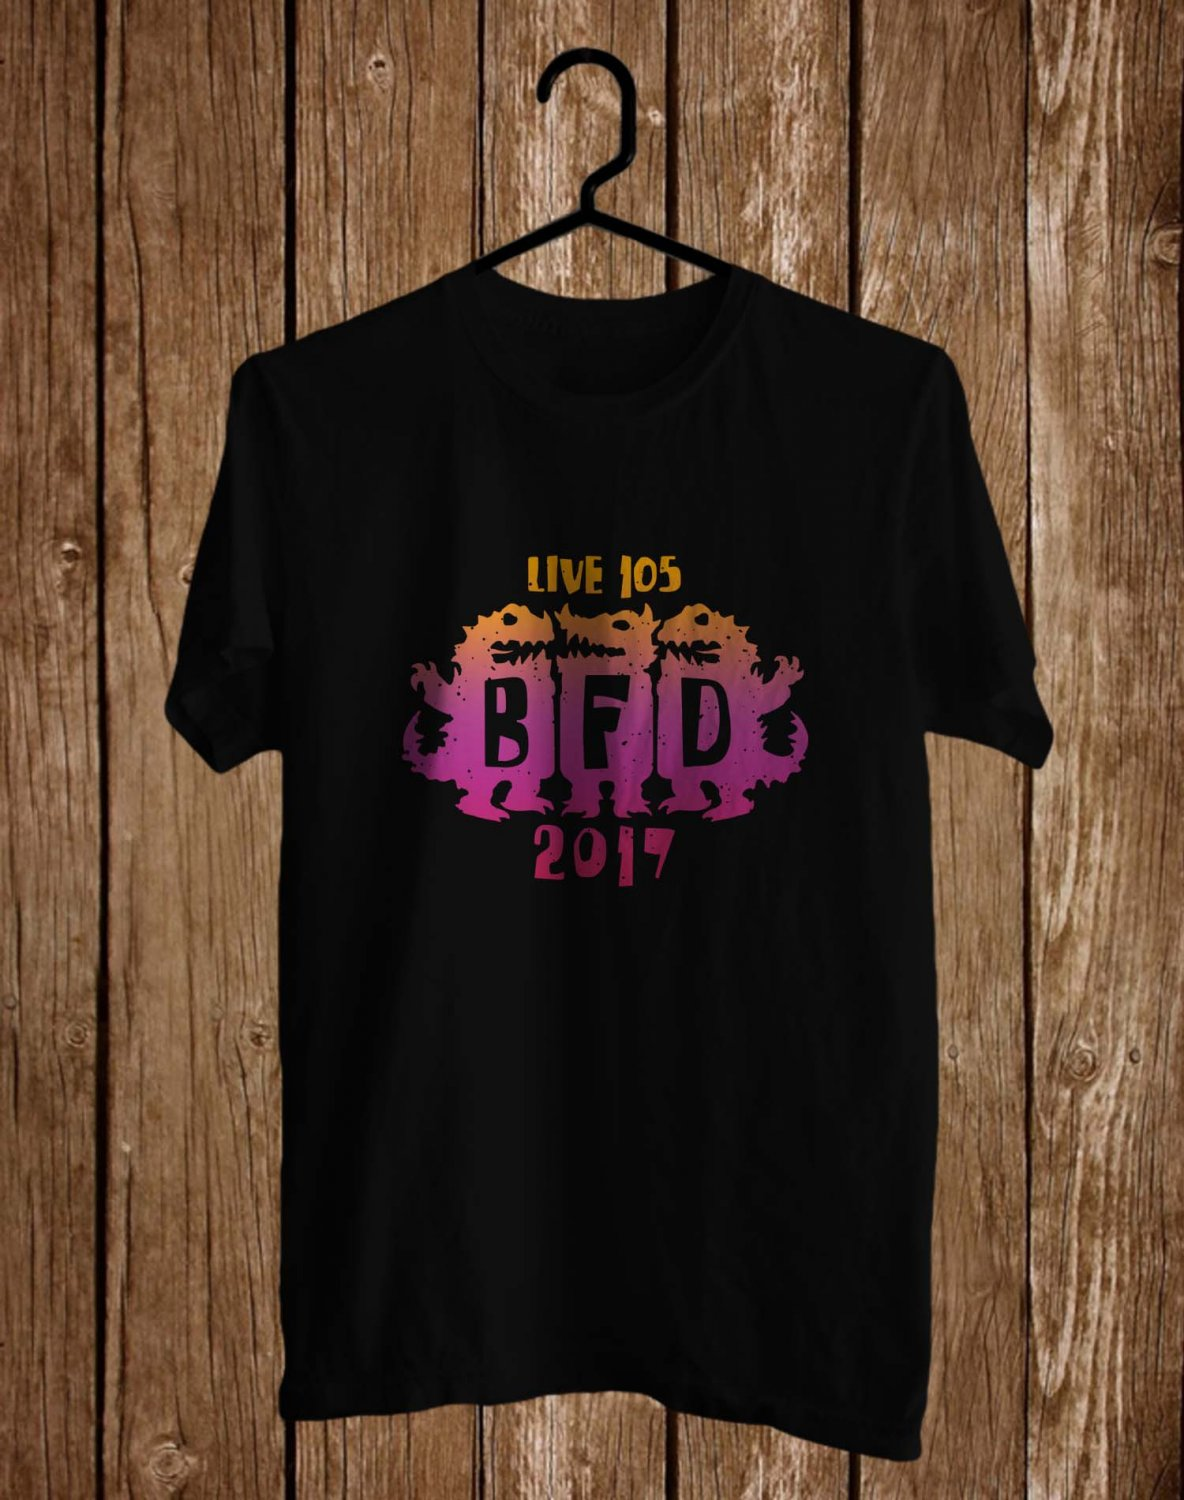 Live 105 BFD Festival Jun 2017 Black Tee's  Front Side by Complexart